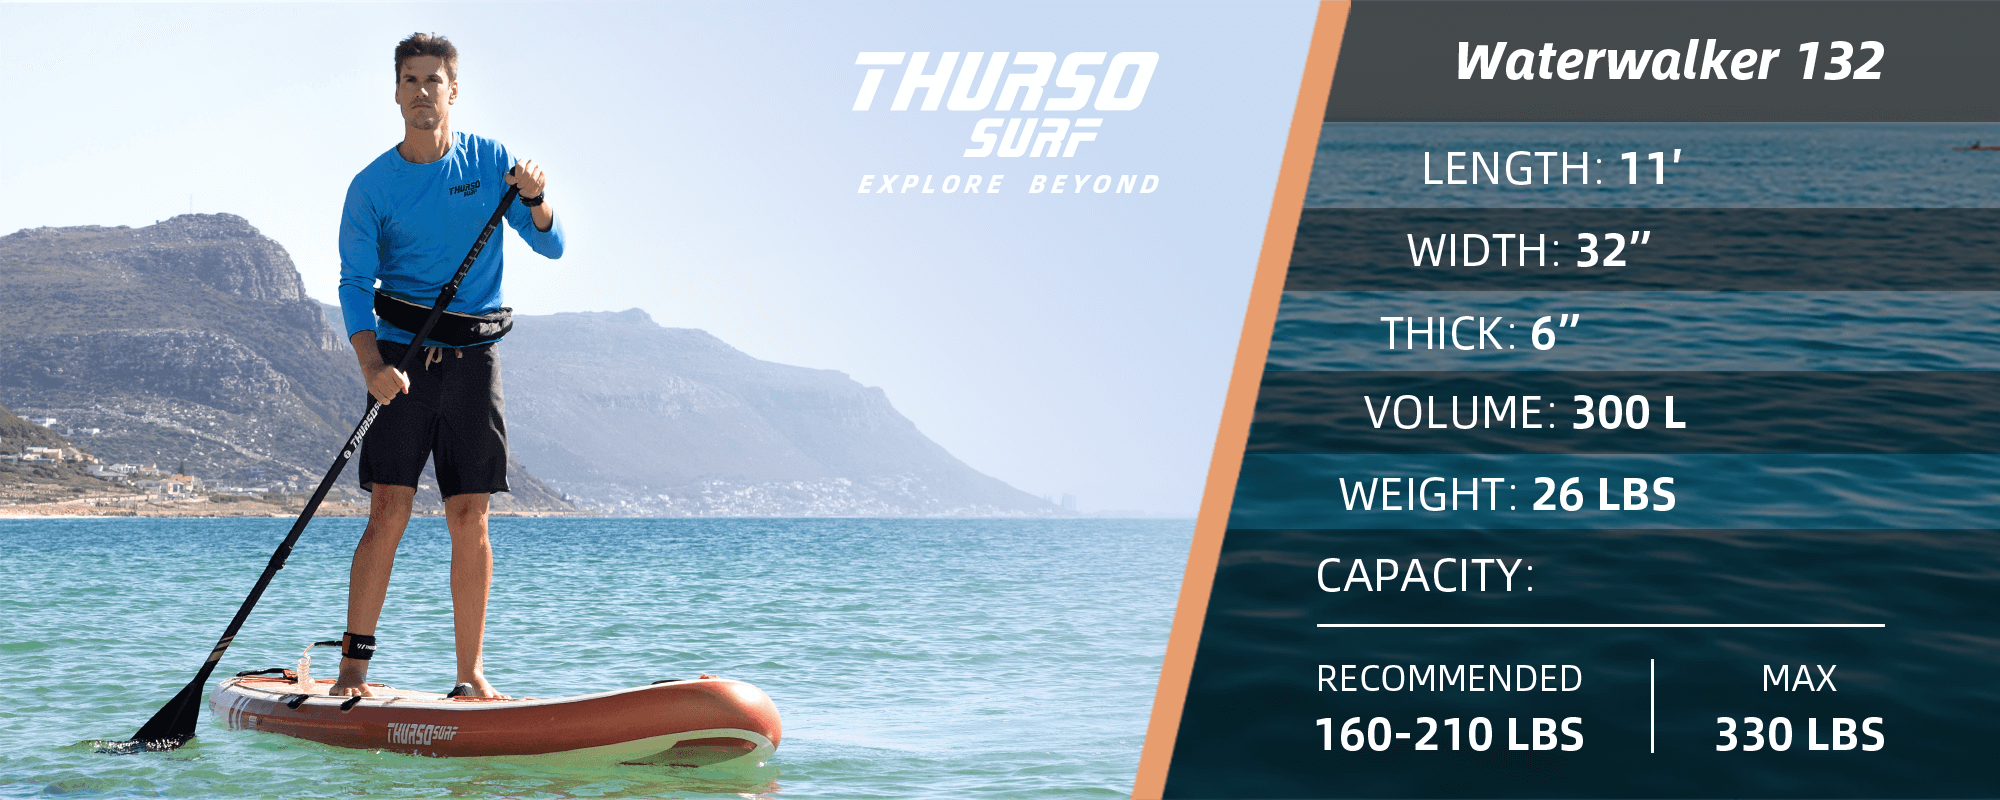 Thurso-Surf-Waterwalker-132-2021-specs